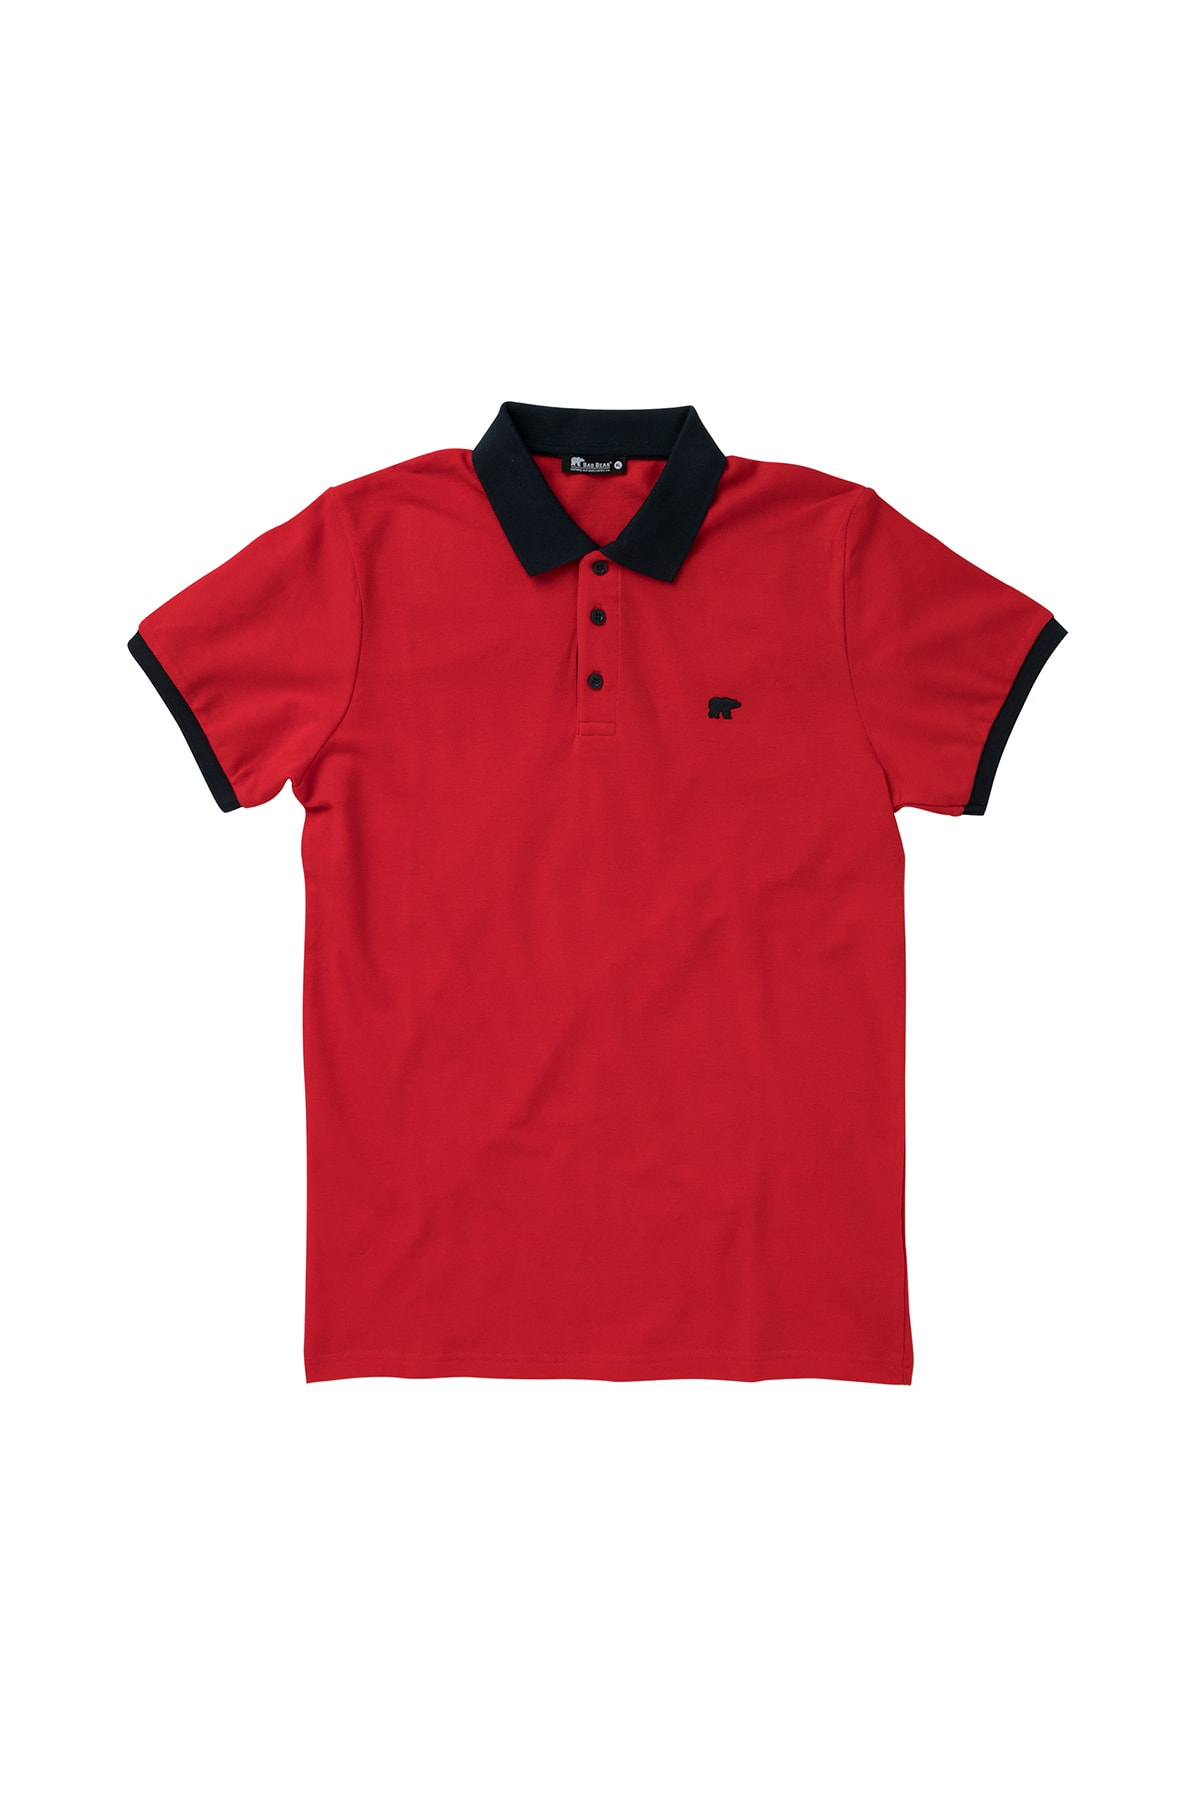 Bad Bear SWITCH PIQUE POLO RED 1